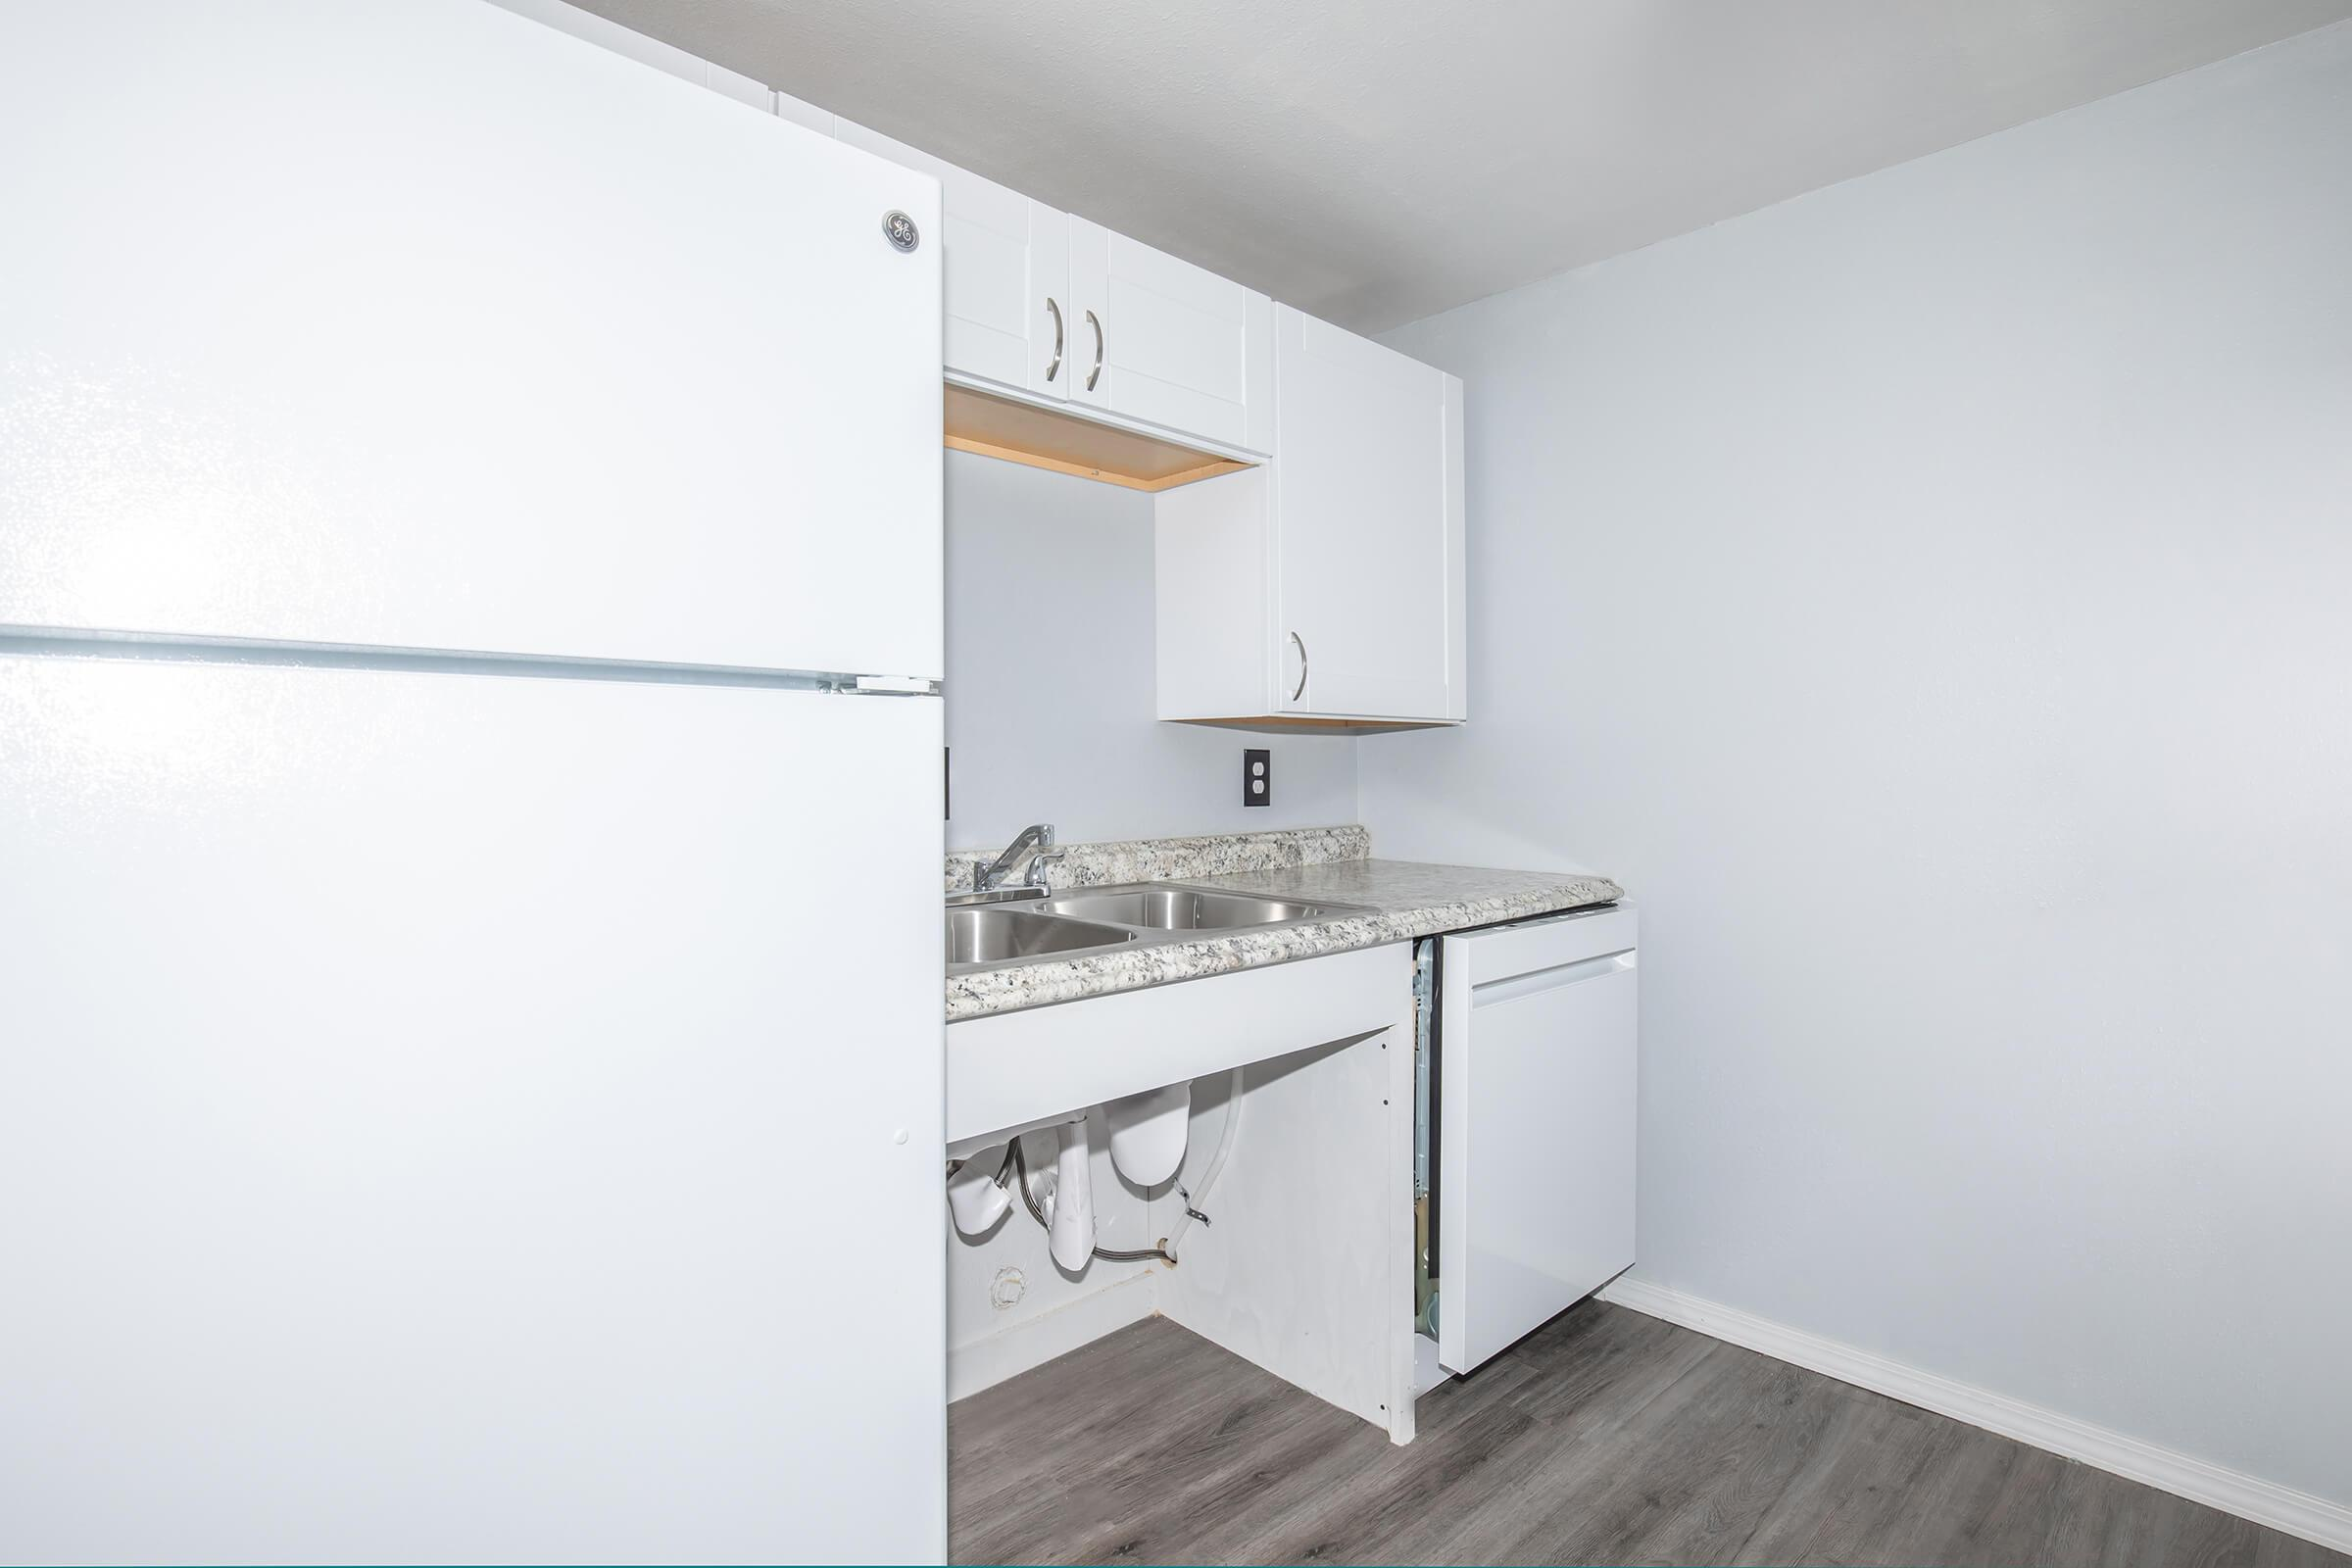 a large white refrigerator in a kitchen